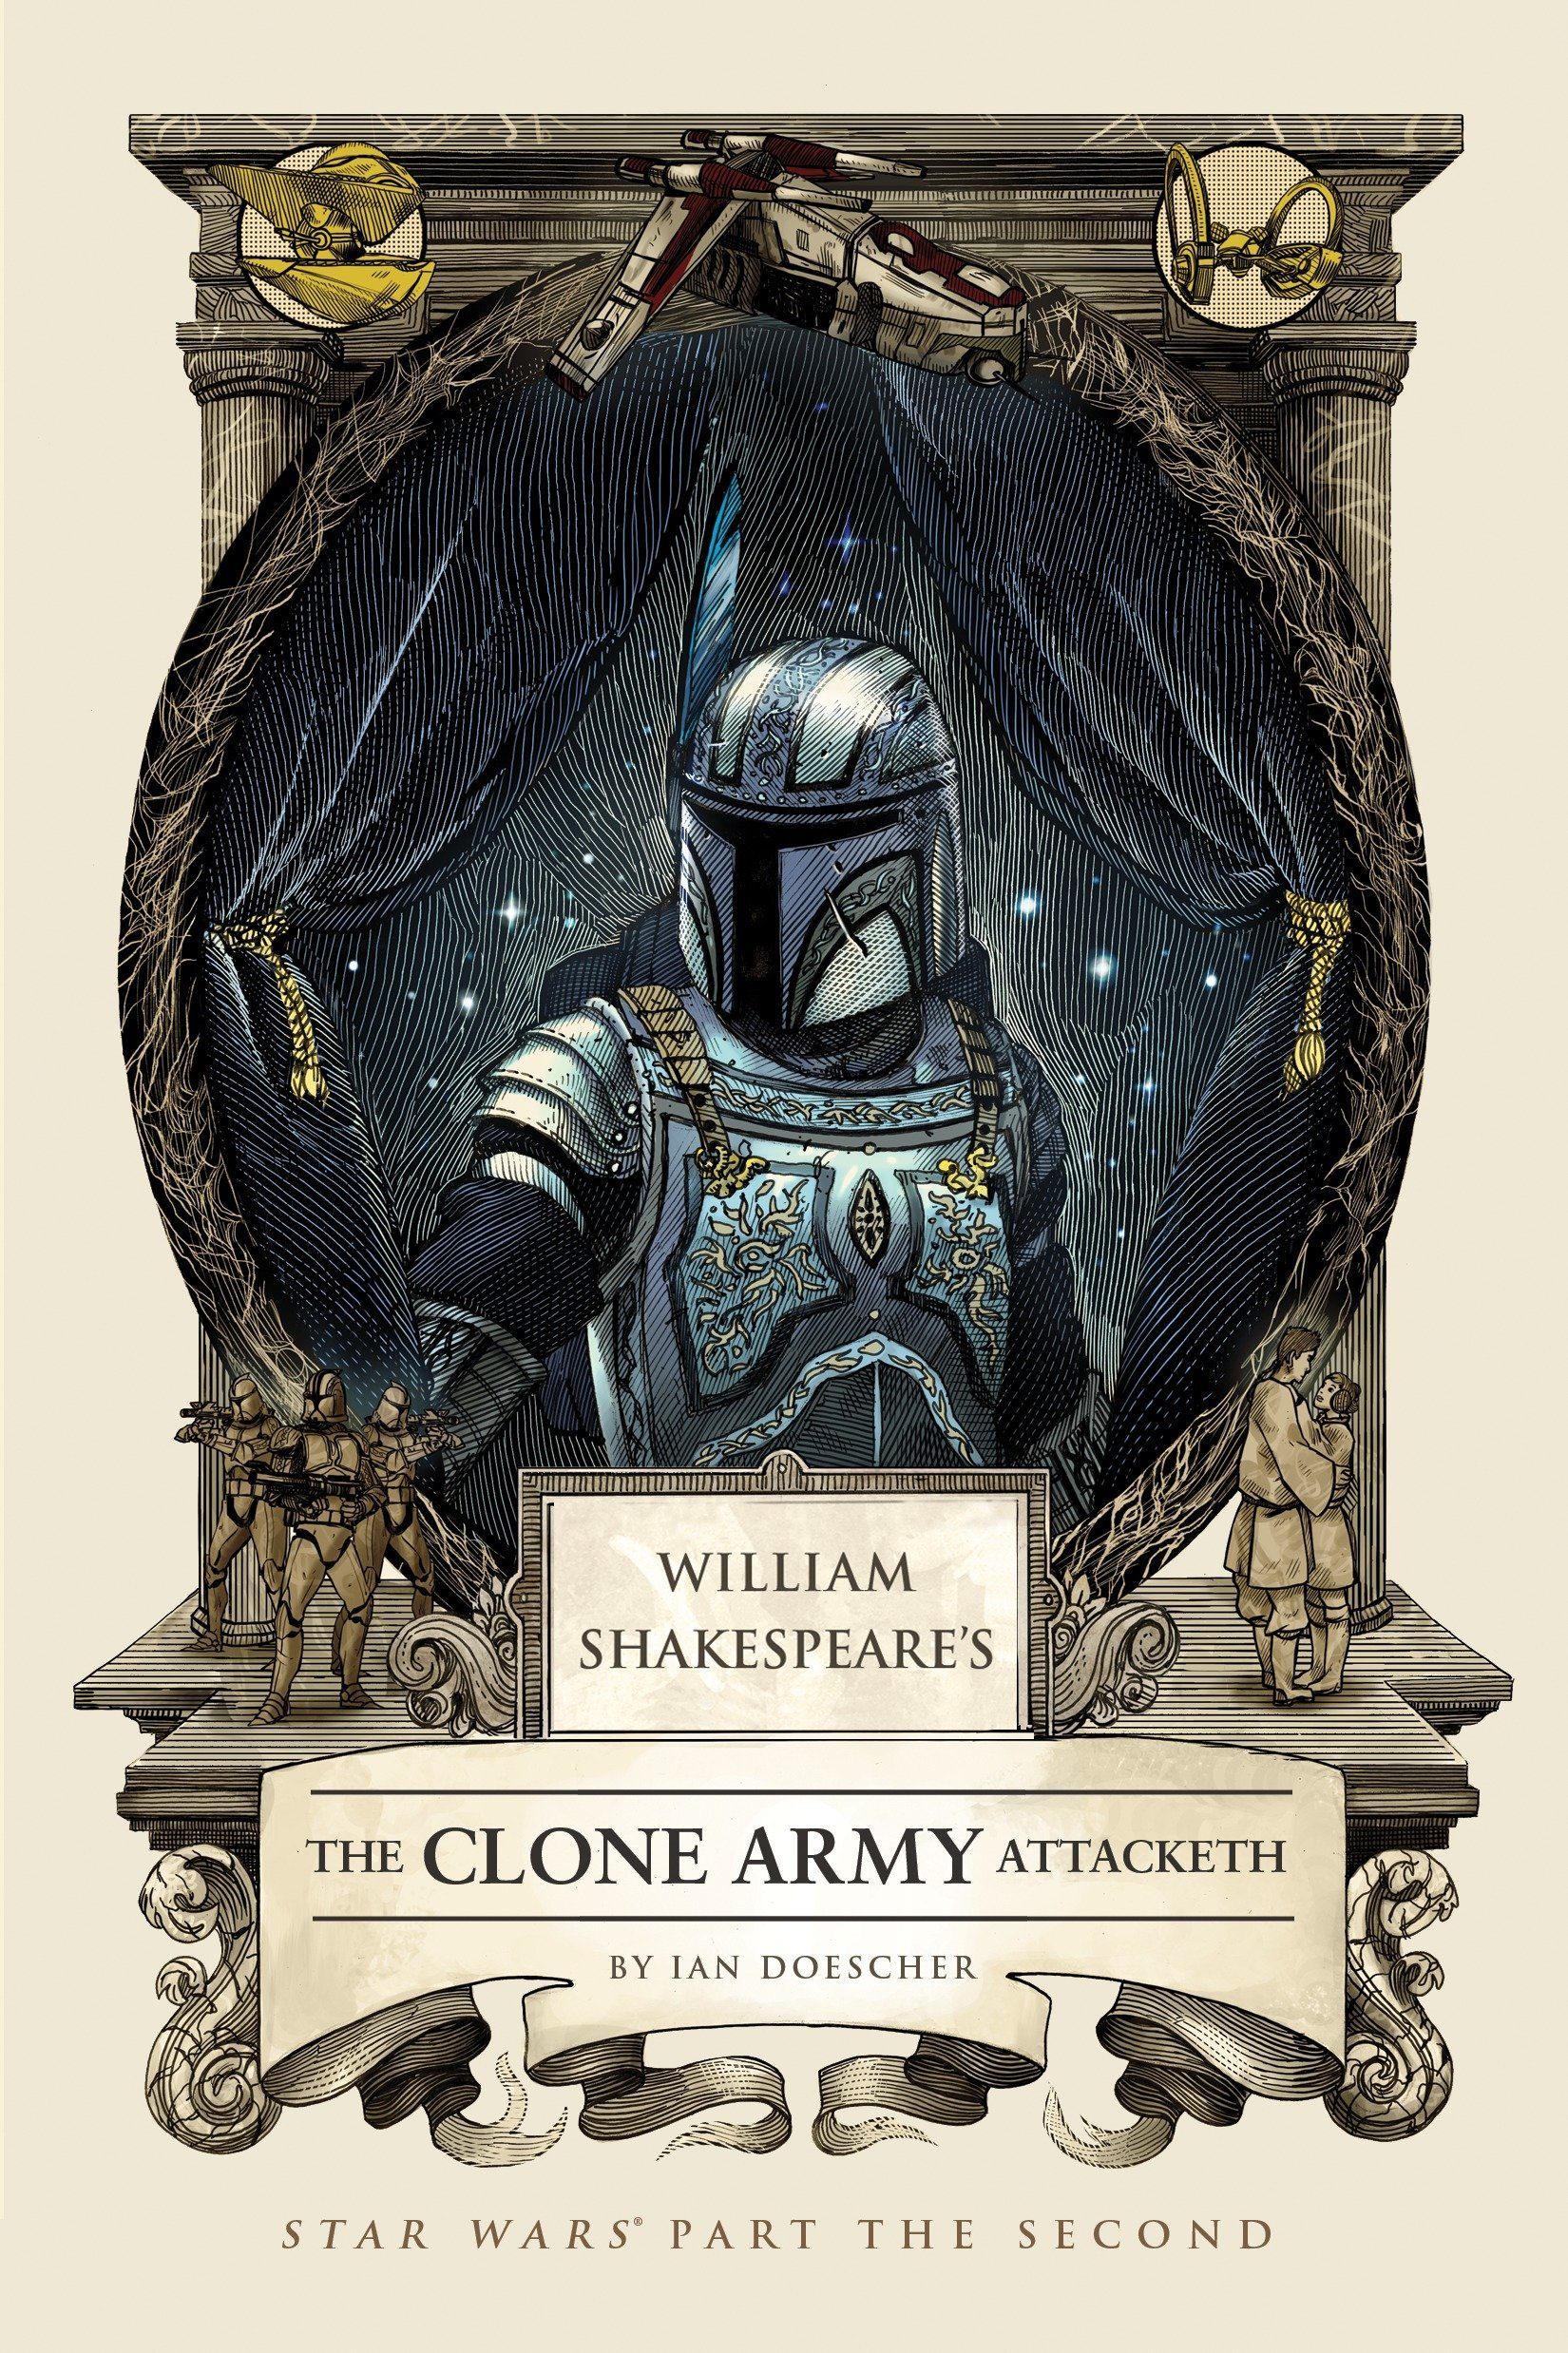 William Shakespeare's The Clone Army Attacketh: Star Wars Part the Second (William Shakespeare's Star Wars Band 2)